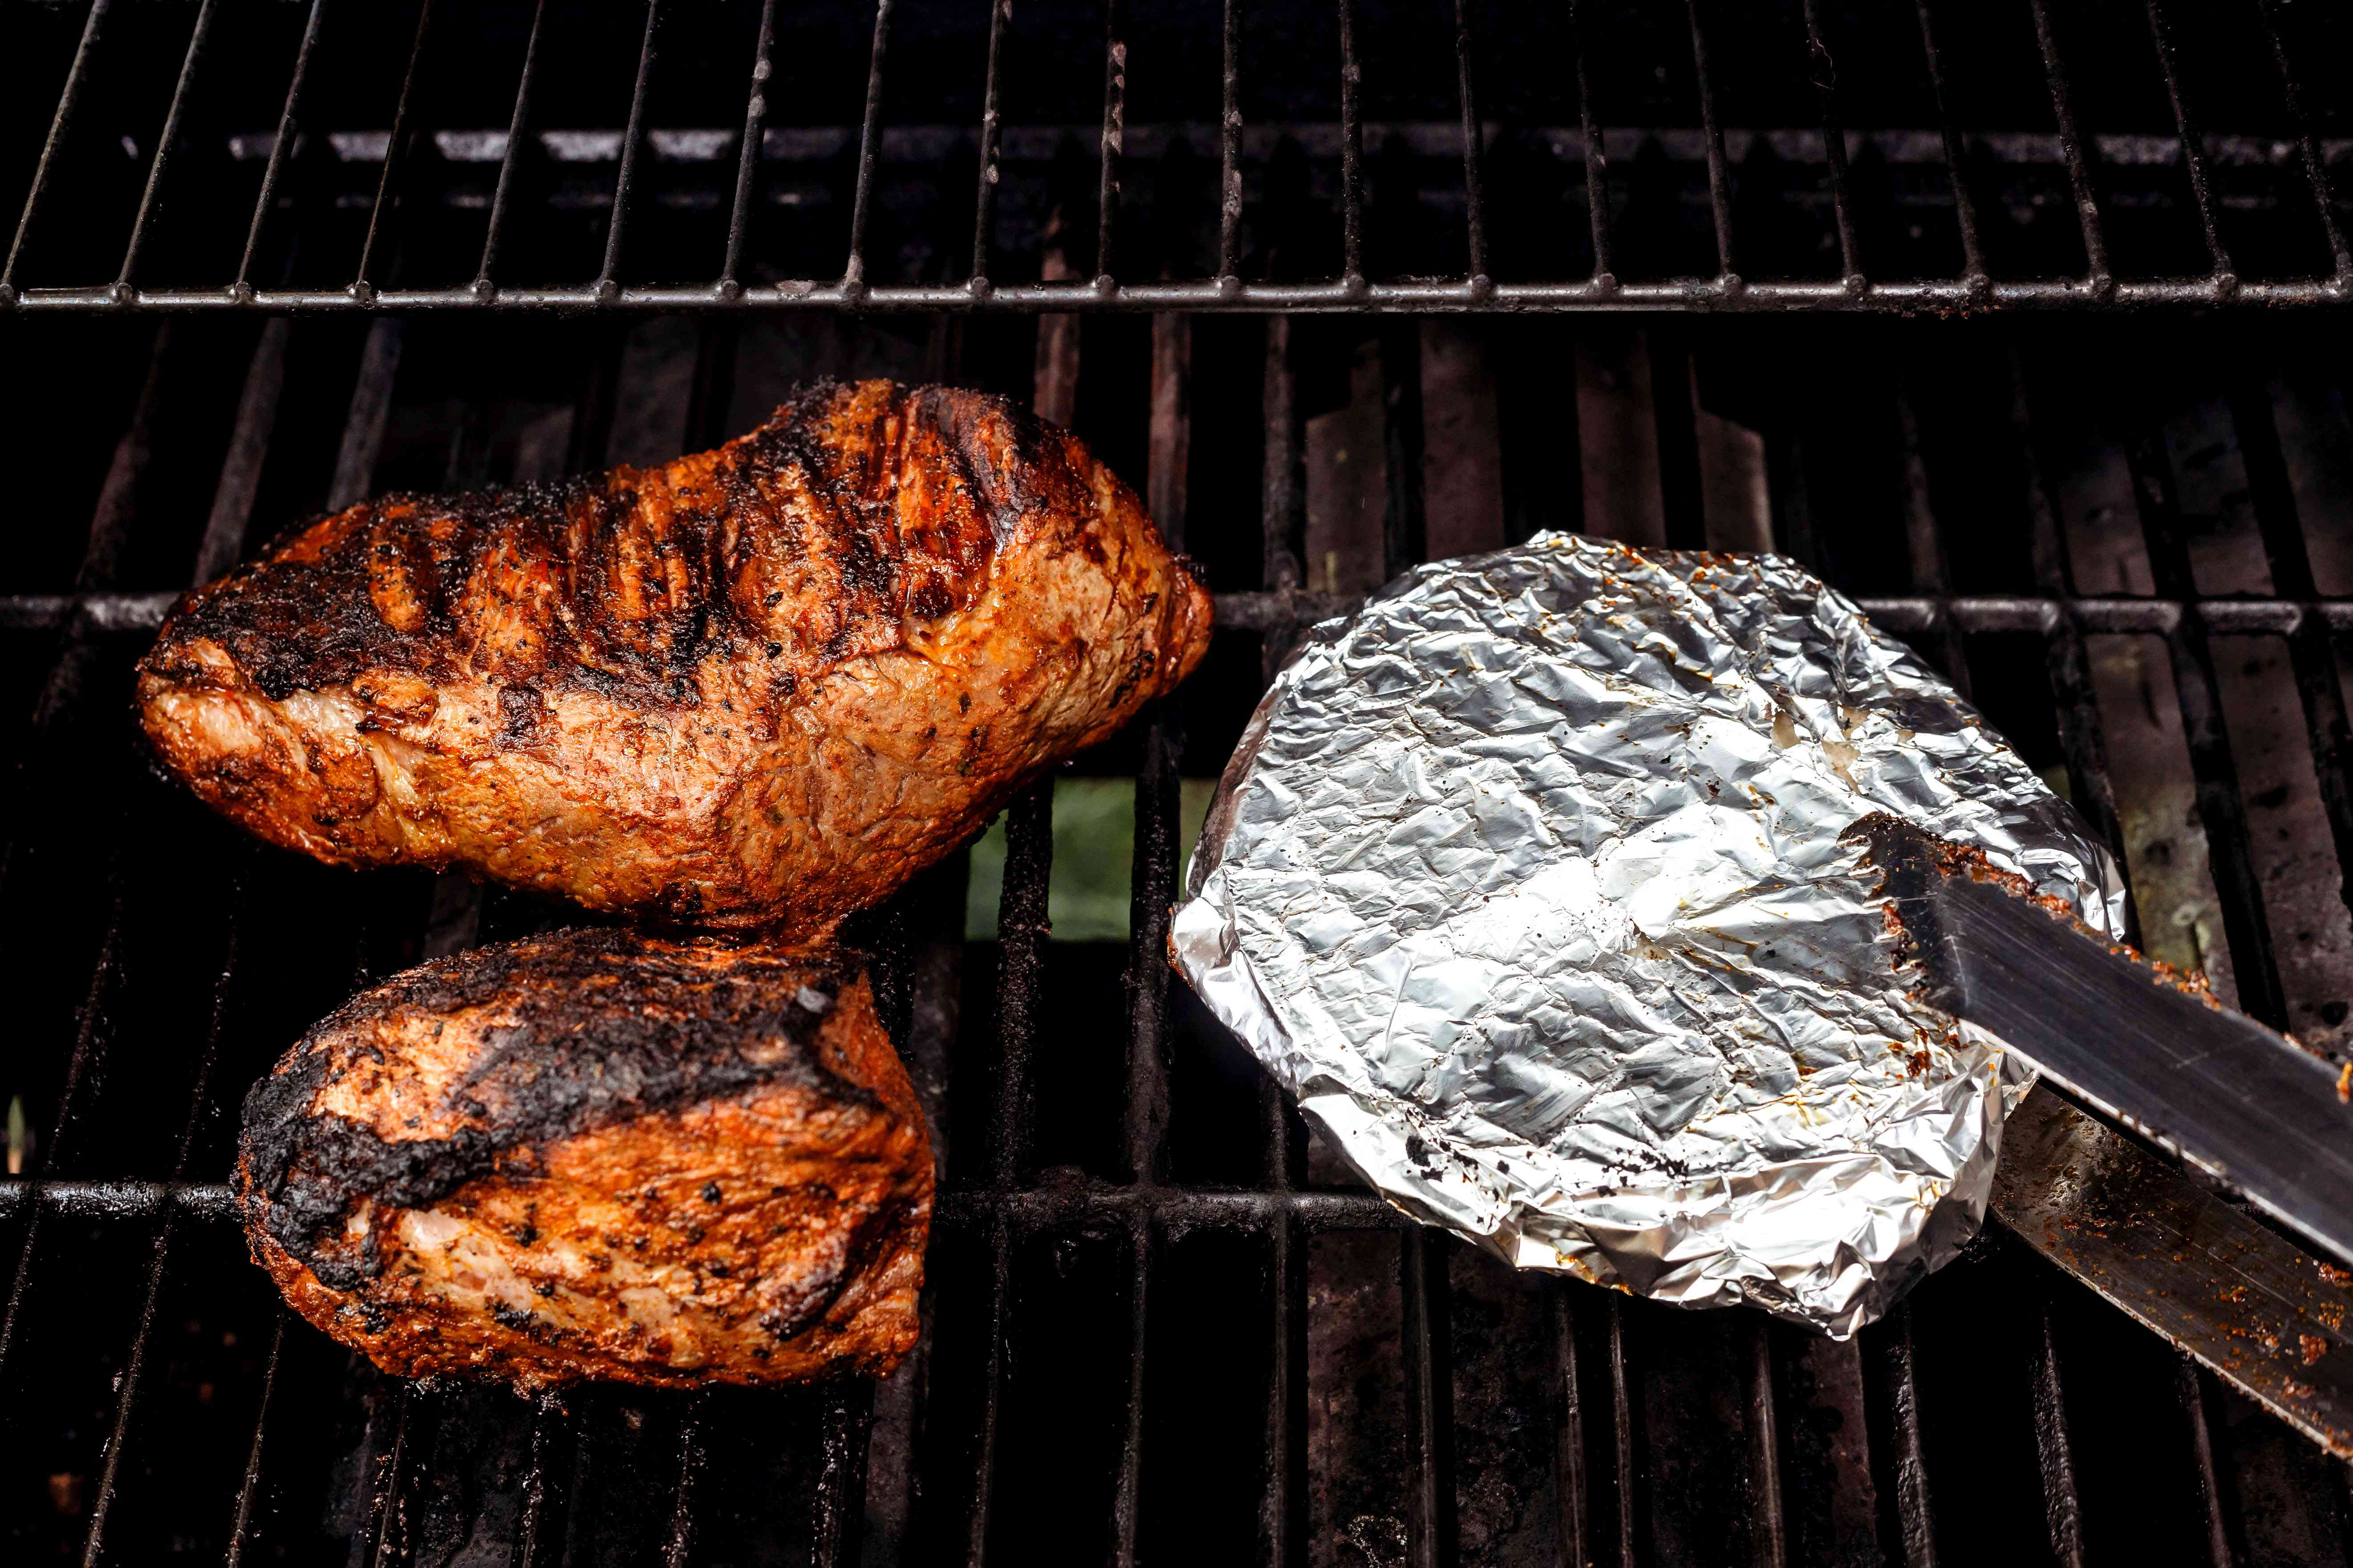 tortillas wrapped in aluminum foil and steak on the grill